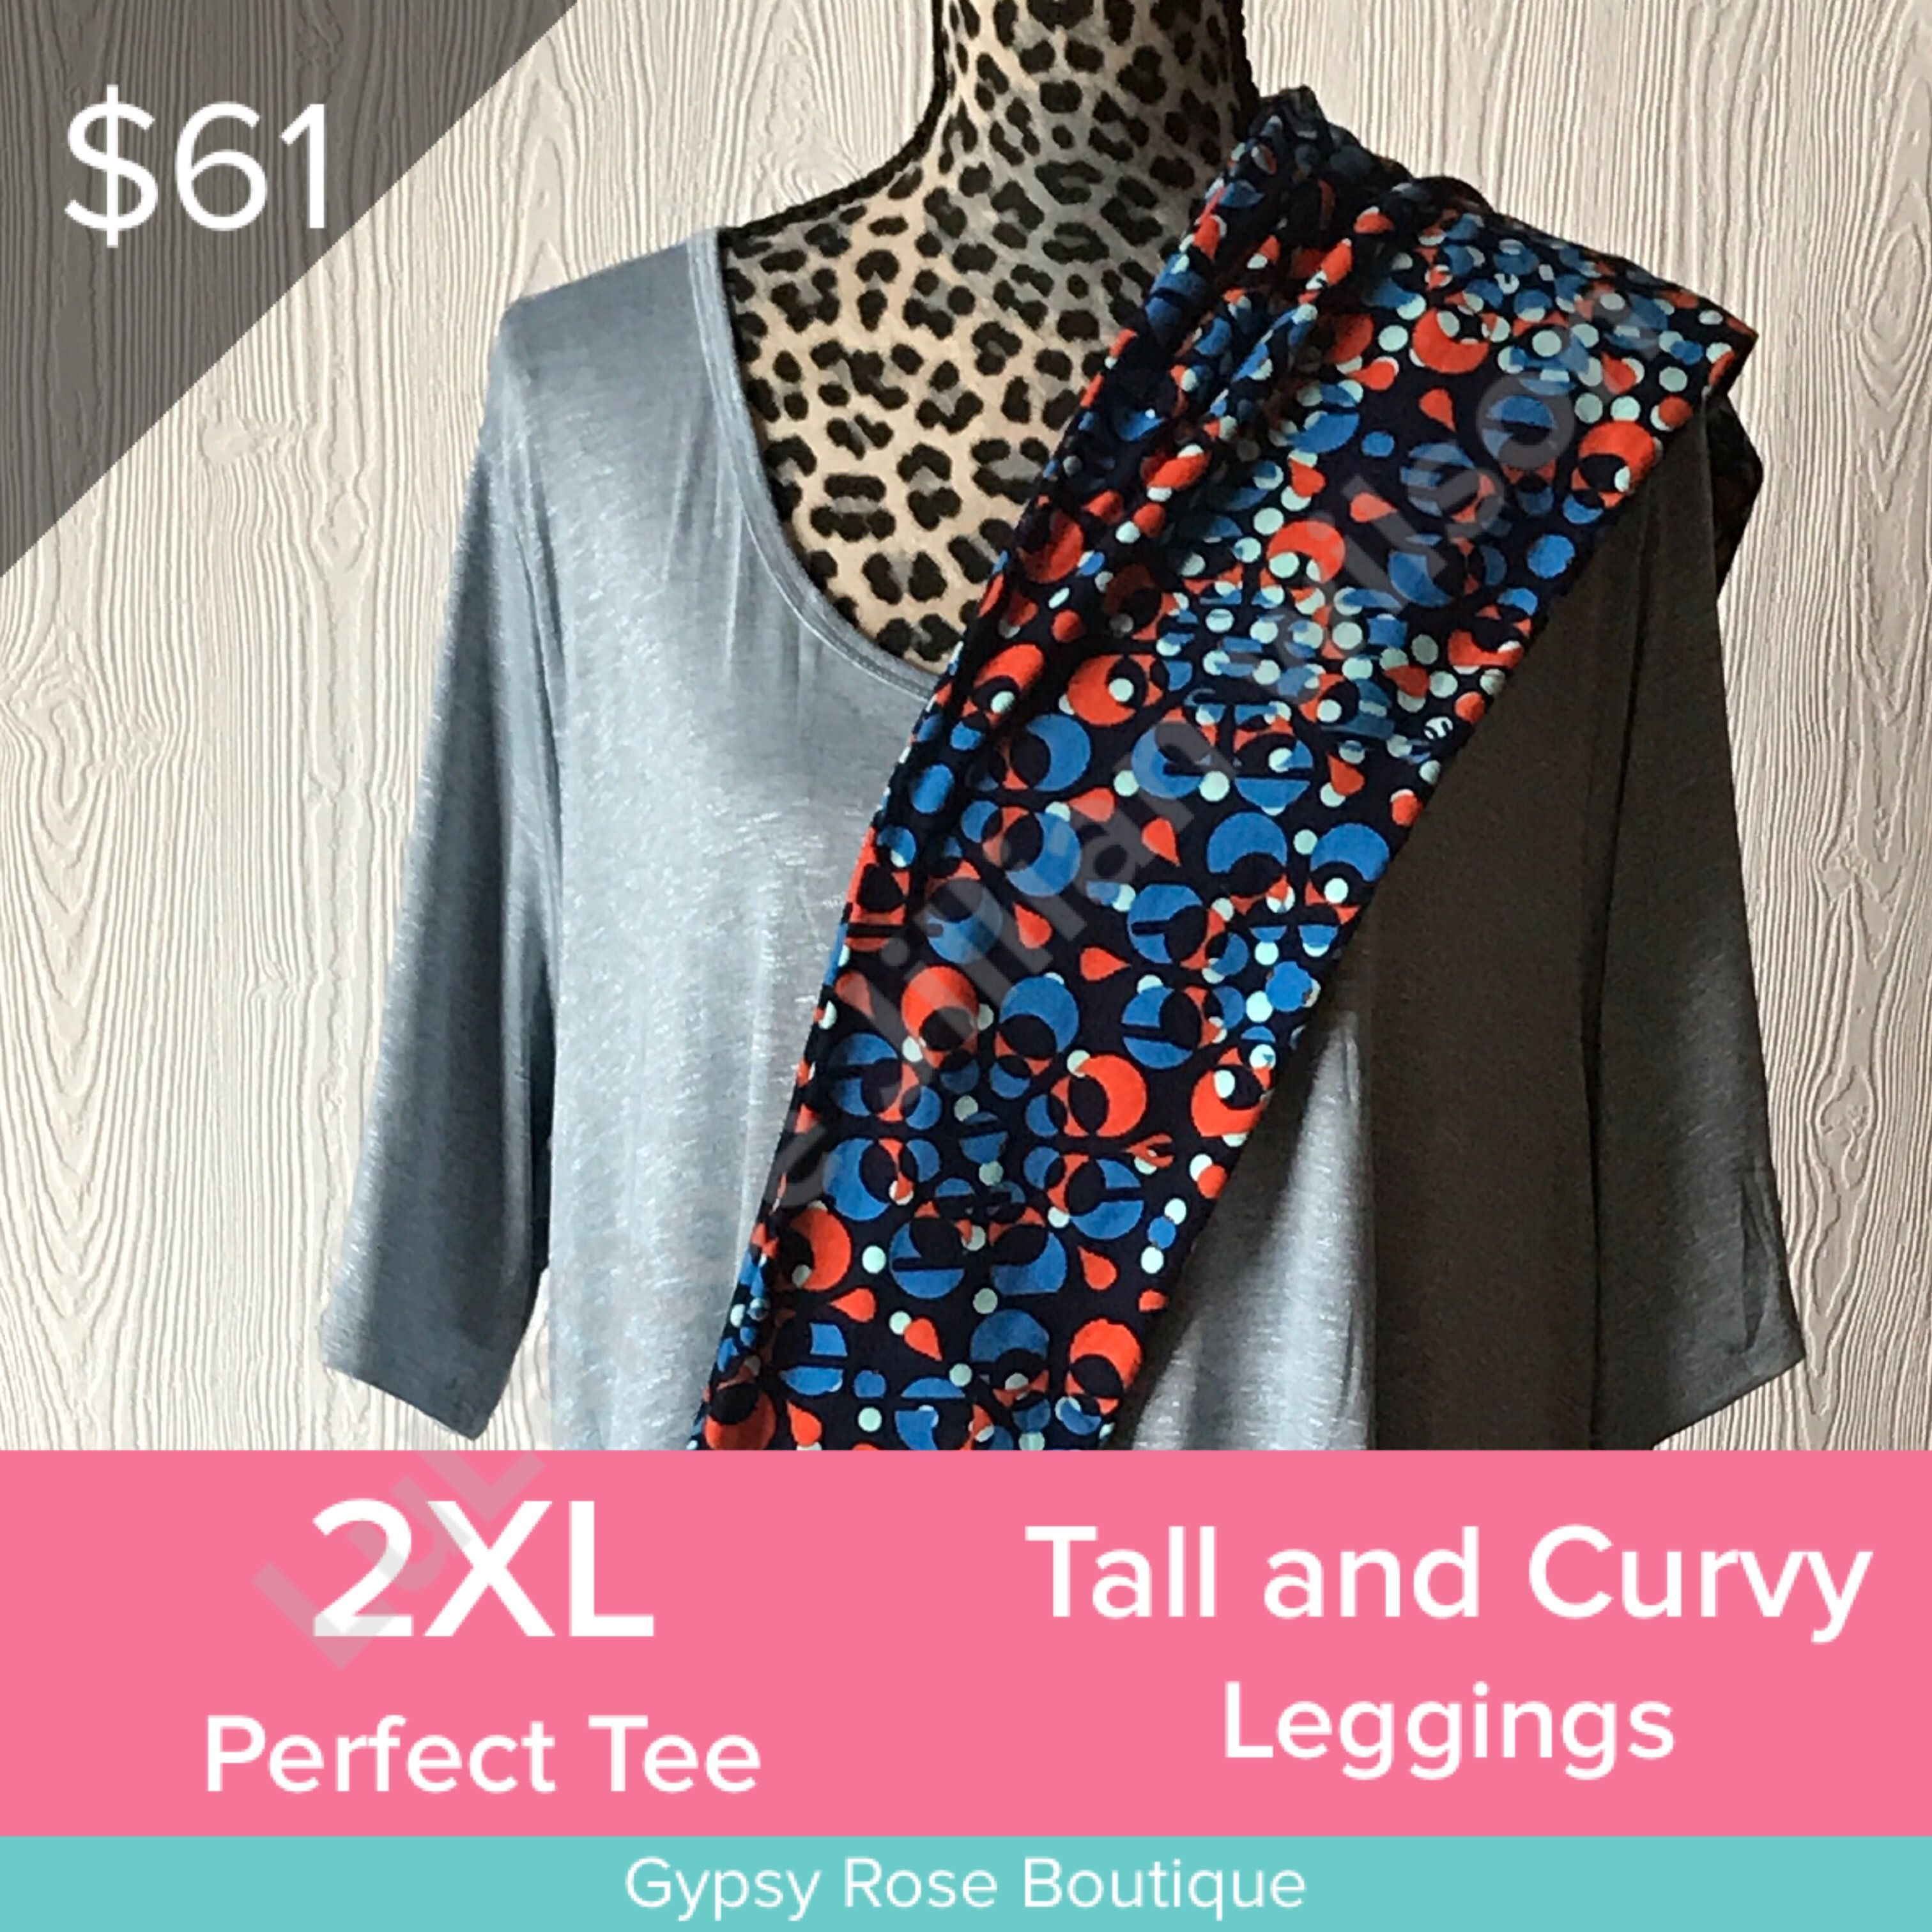 eebcc132352a Lularoe unicorn TC leggings & 2XL perfect t outfit.,Join my group to claim